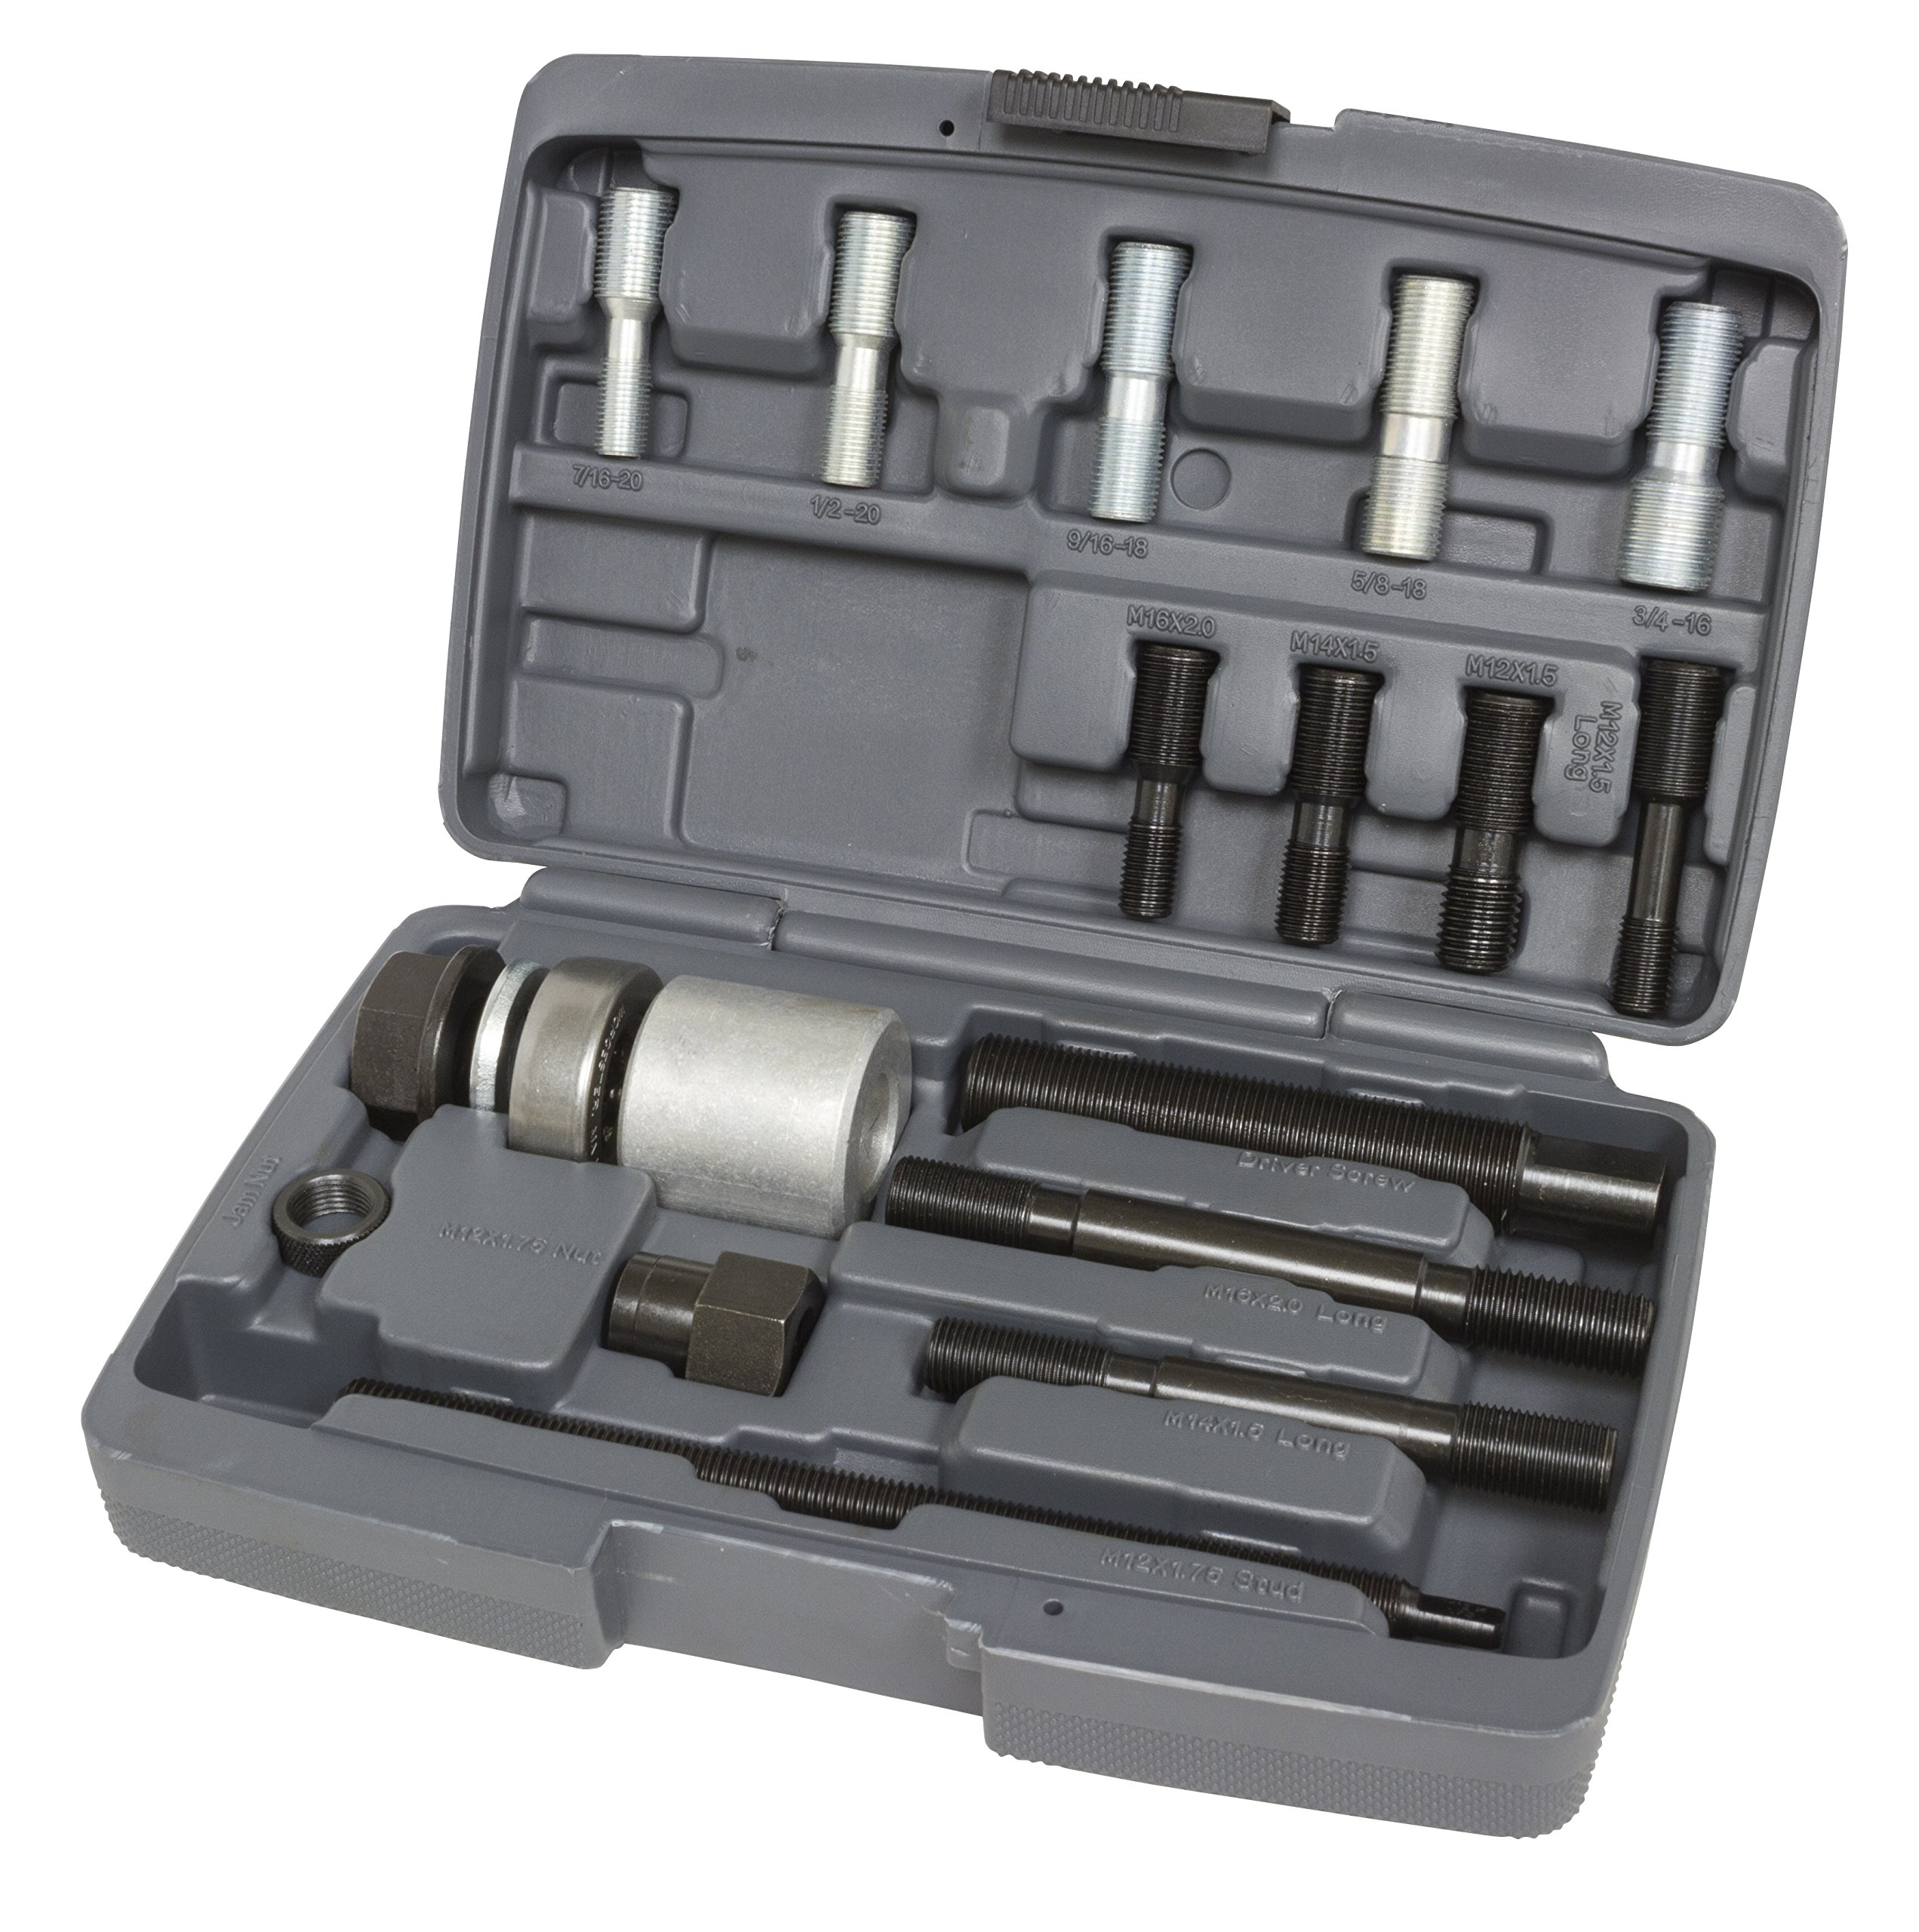 Lisle 53760 Harmonic Balancer Installer Kit (12 Adapters) by Lisle (Image #1)